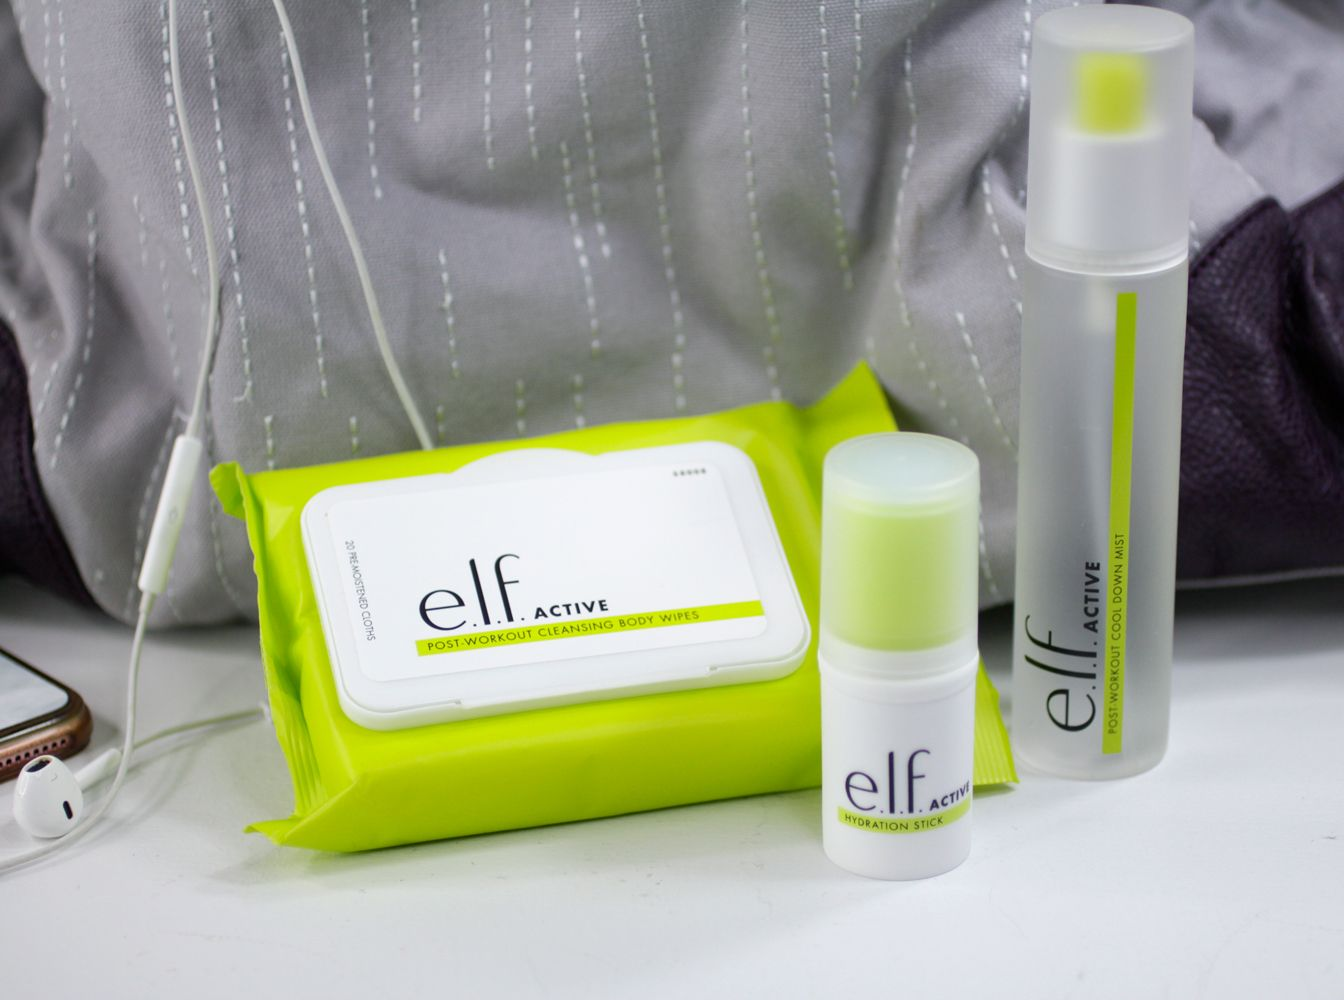 Elf Cruelty Free Skincare and Makeup Made for the Gym